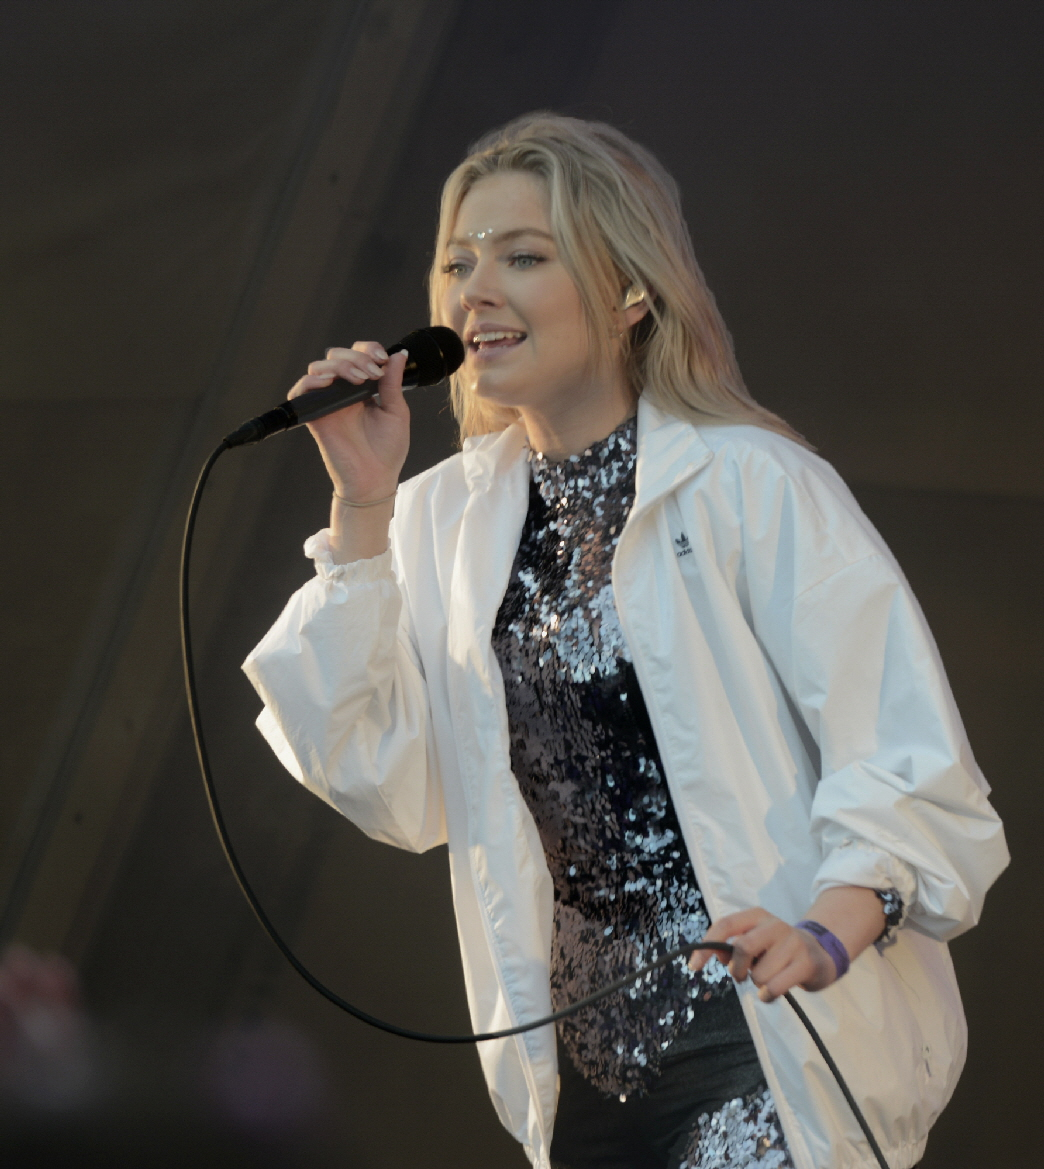 On Thursday evening the festival begins, with three stages where performances are paced so all  can enjoy the music, One of the first acts to perform was Astrid S who energized the audience.  Even the artists join in listening to other performers after their sets are completed.